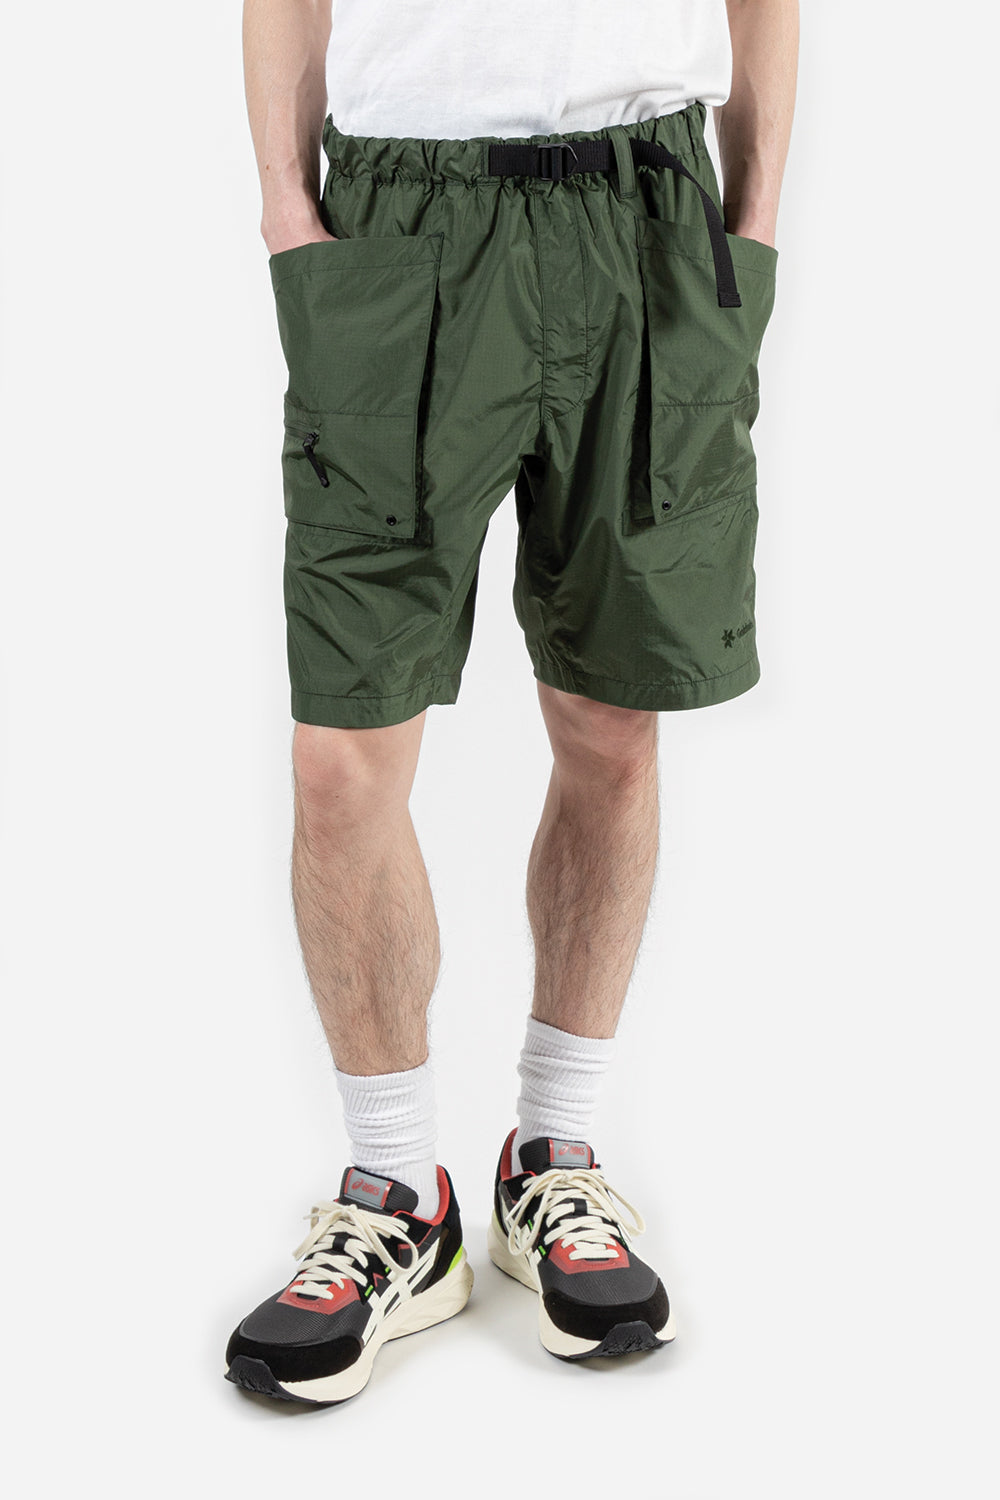 goldwin-element-mount-cargo-shorts-khaki-green